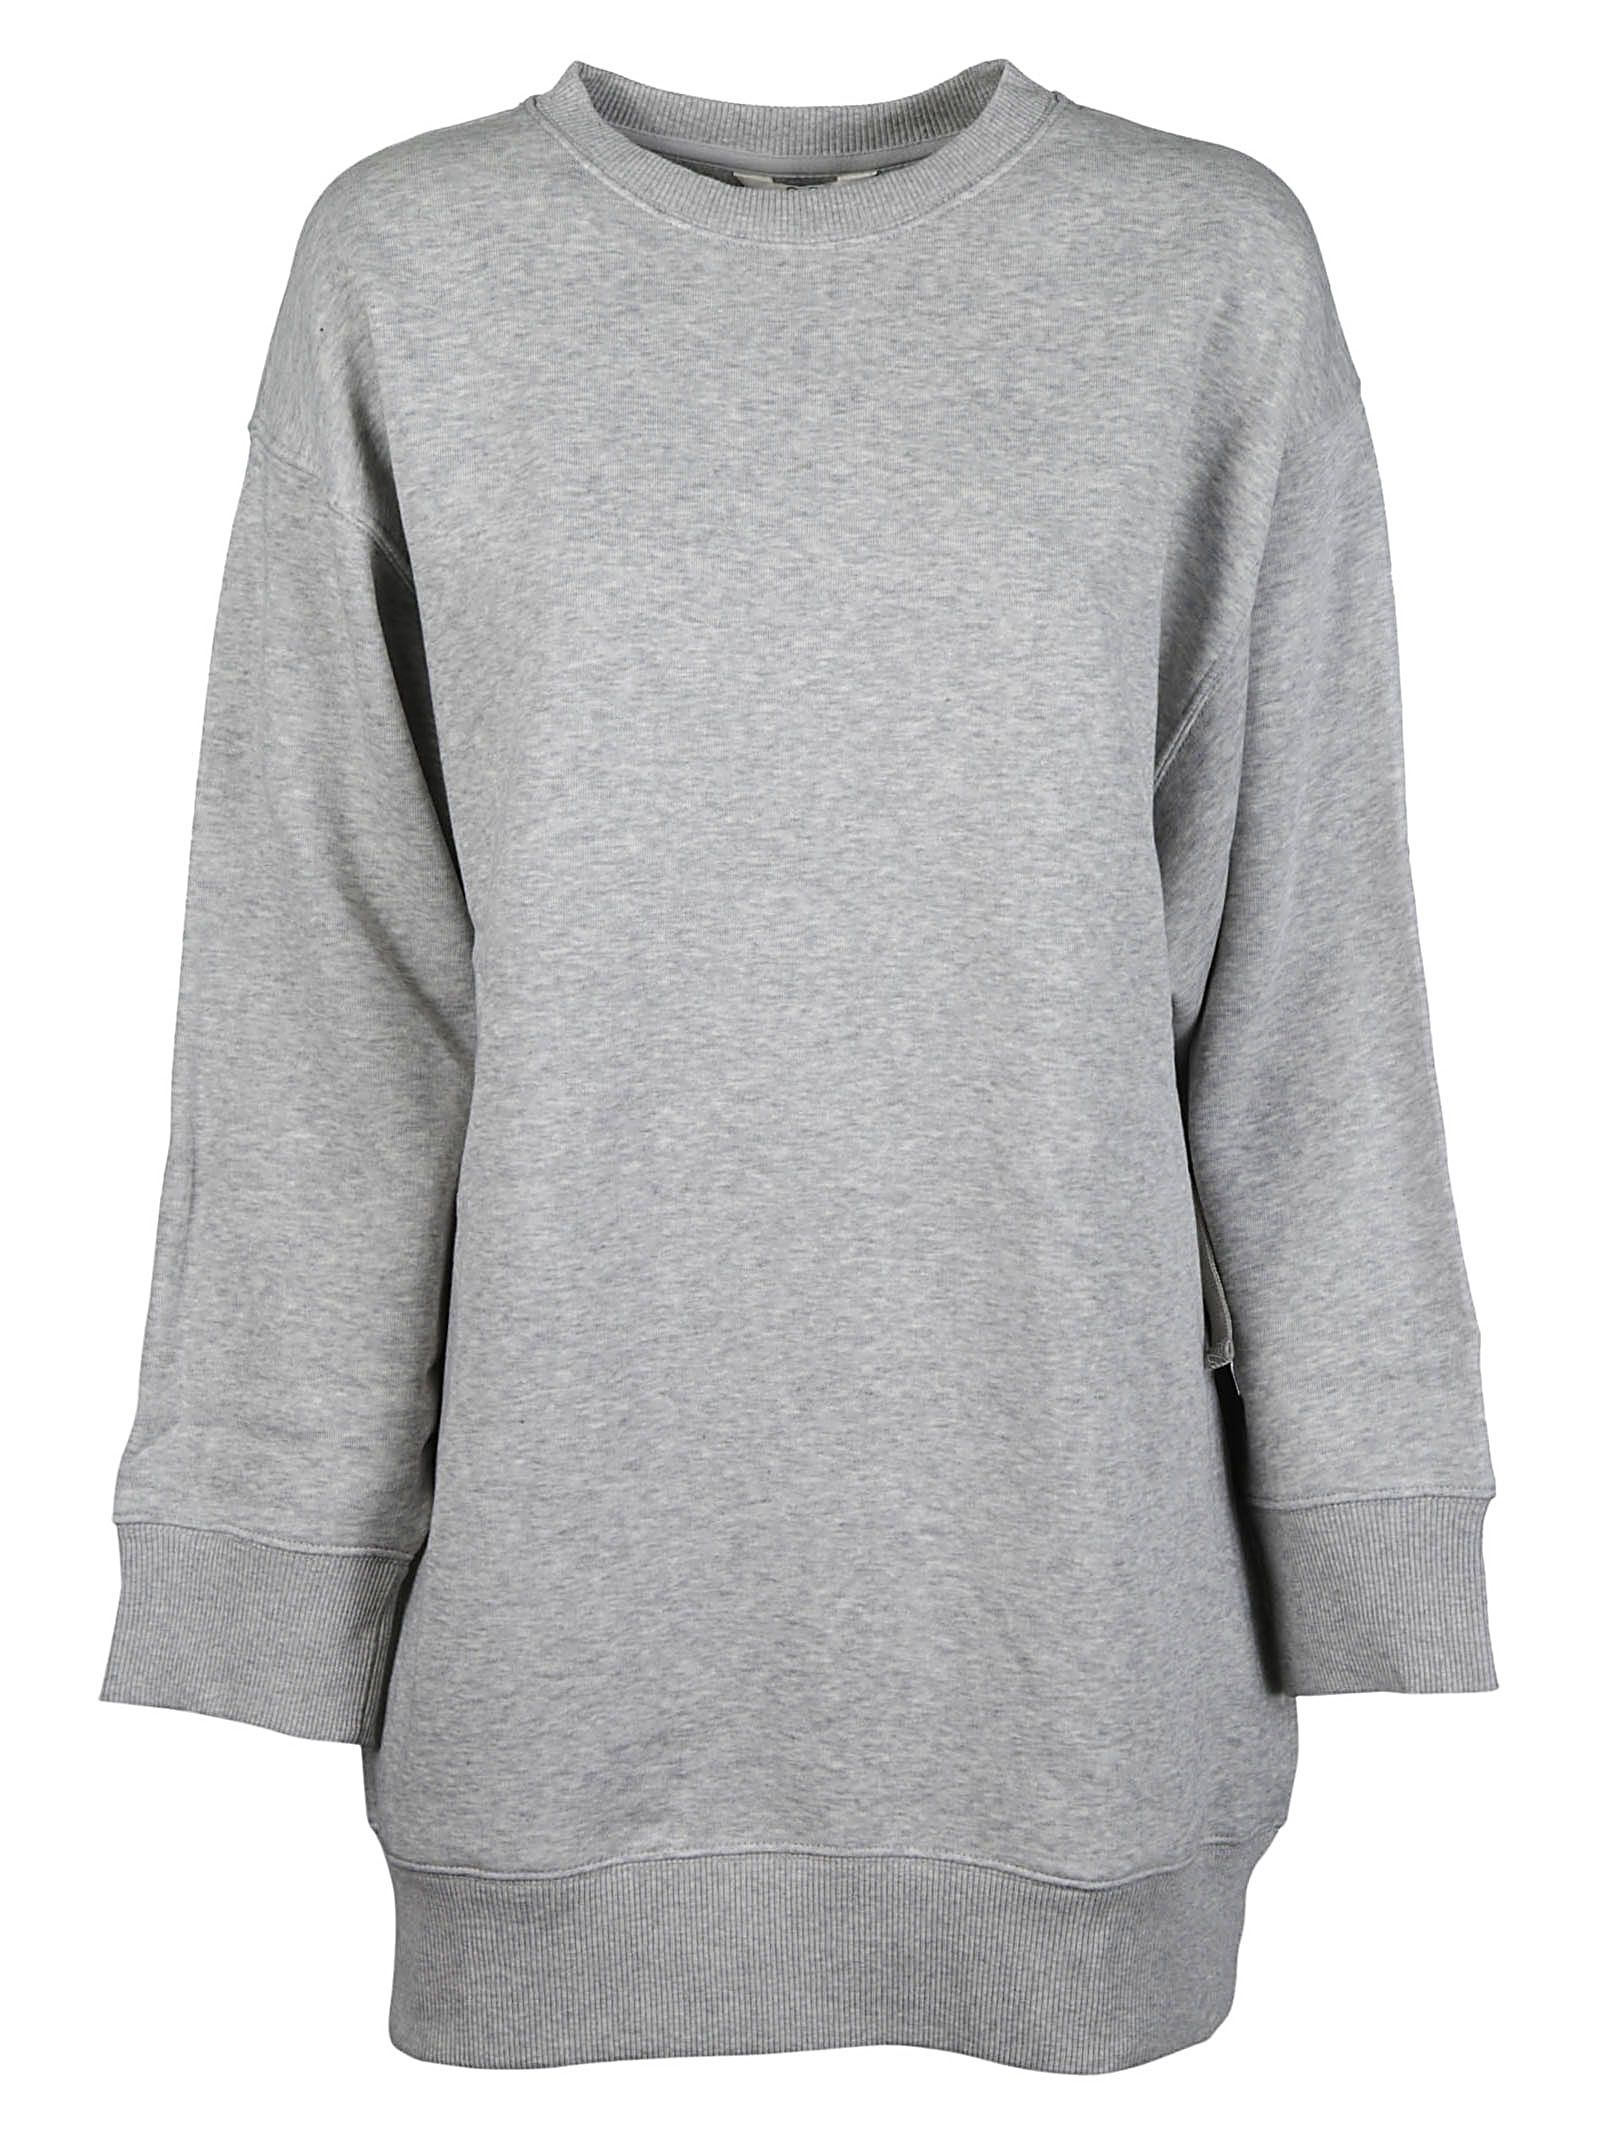 The Best Store To Get Free Shipping In China Tommy x Gigi cross back sweater dress - Grey Tommy Hilfiger Popular Cheap Sale Eastbay l6Q1by9D